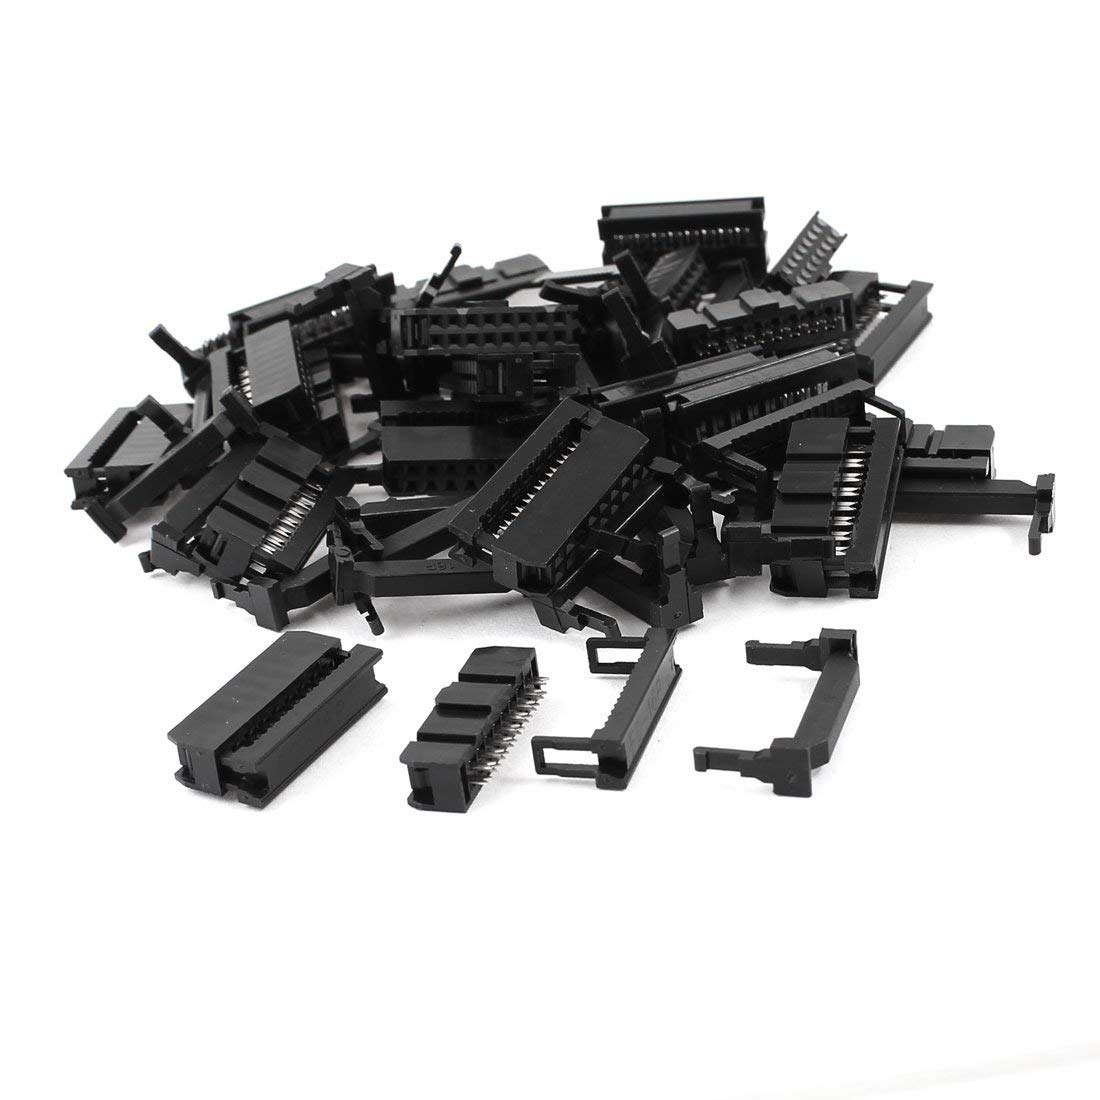 uxcell 25 Pcs FC-16P 2x8 Pin Female Header IDC Cable Connector 2.54mm Pitch